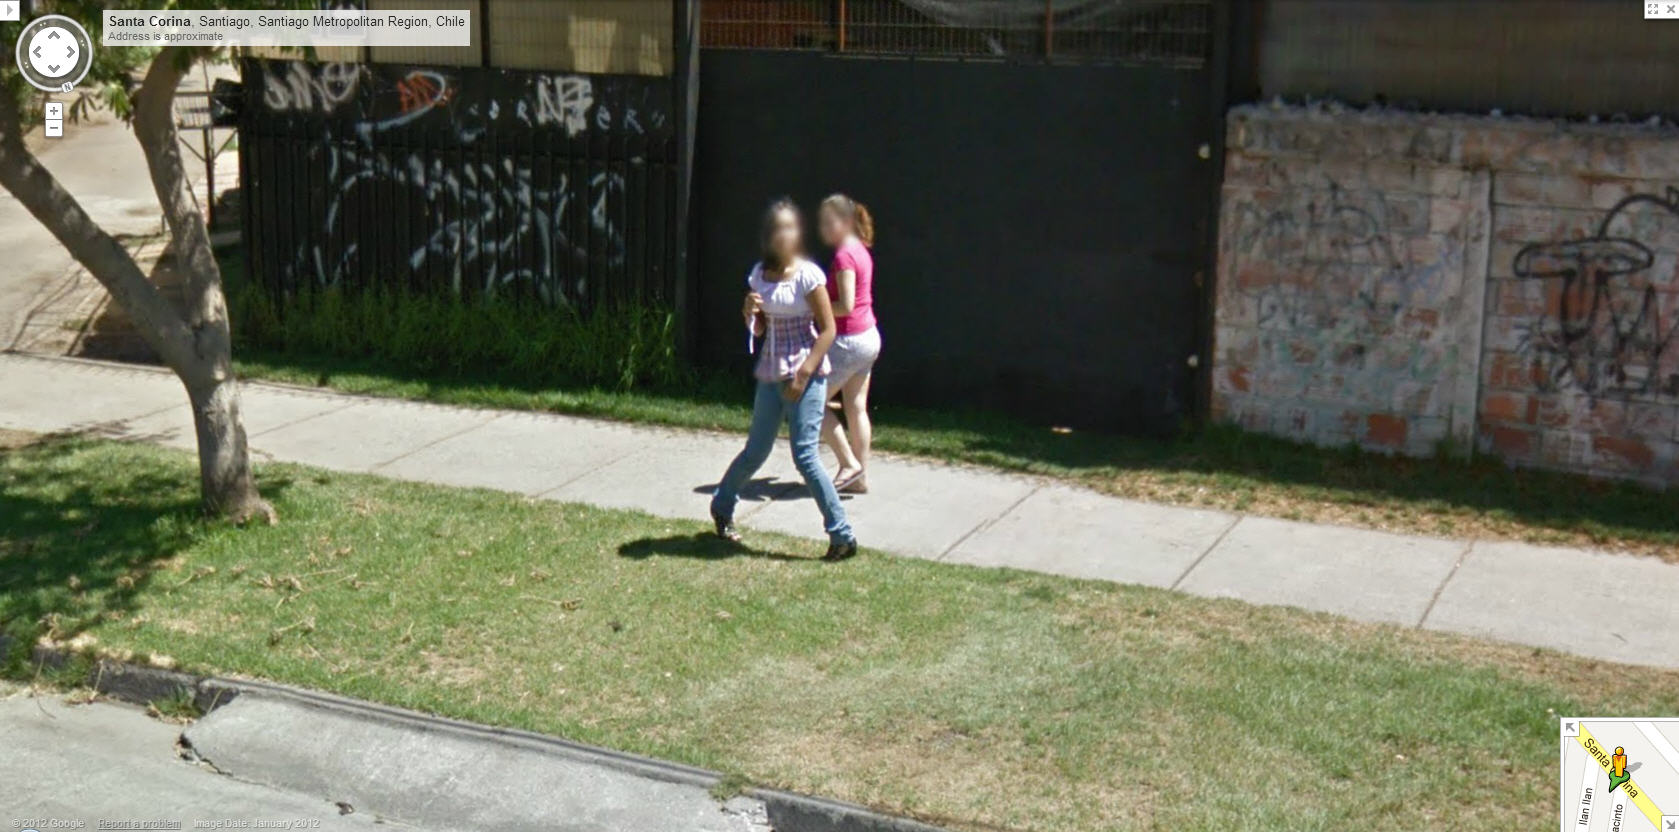 google-street-view-chile-captures-a-girl-posing-for-the-camera